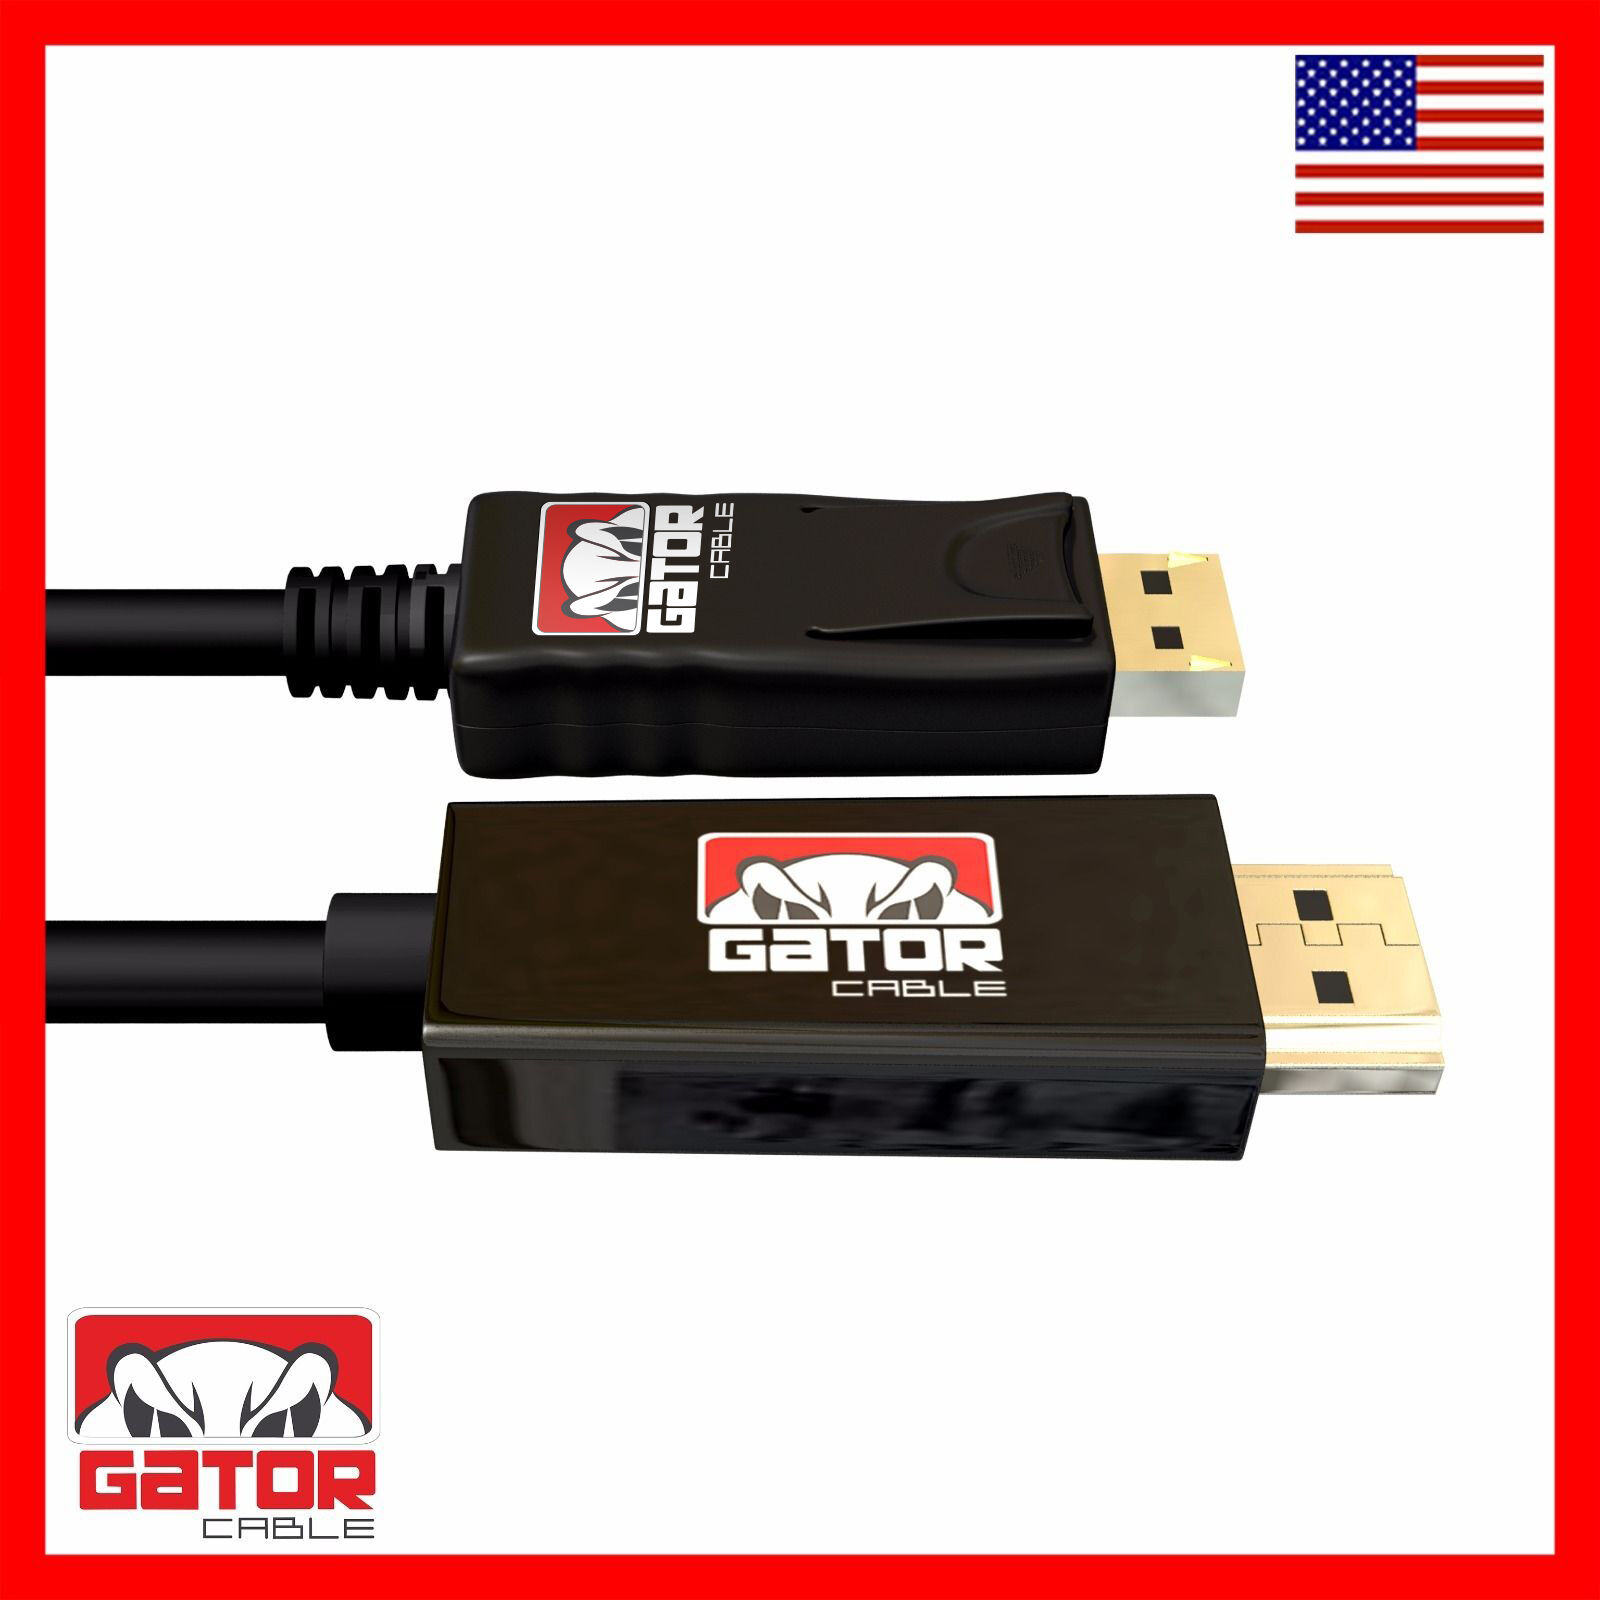 Купить DisplayPort DP to HDMI Audio Video Cable Cord Adapter Gold Plated PC HDTV 10FT